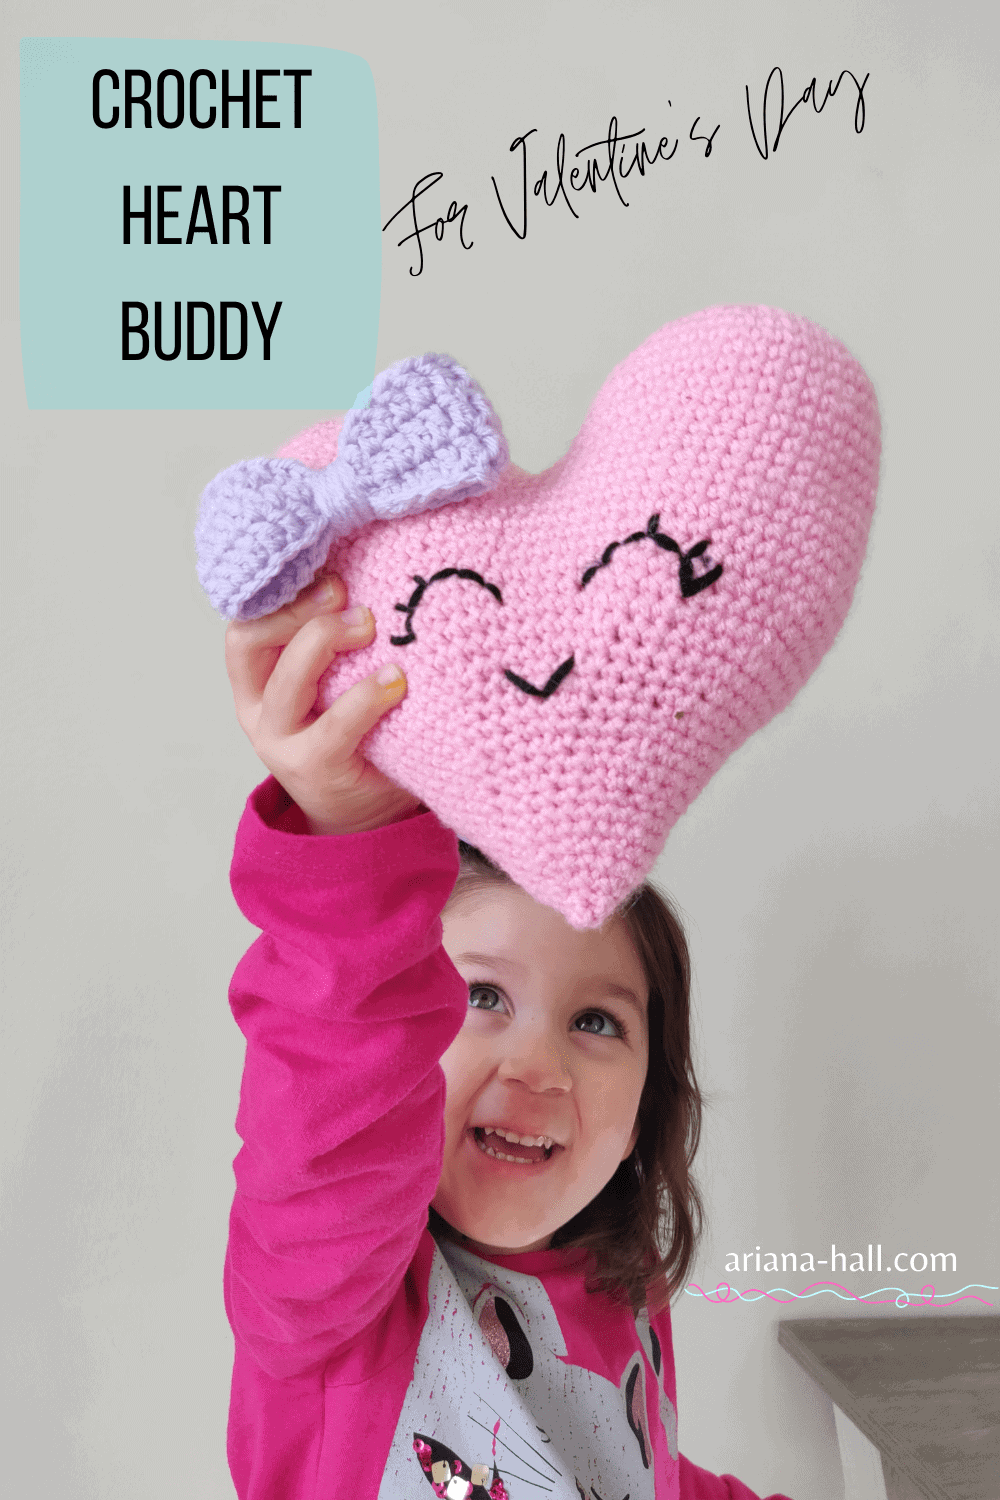 Child holding up a crochet heart with a purple bow and smile.